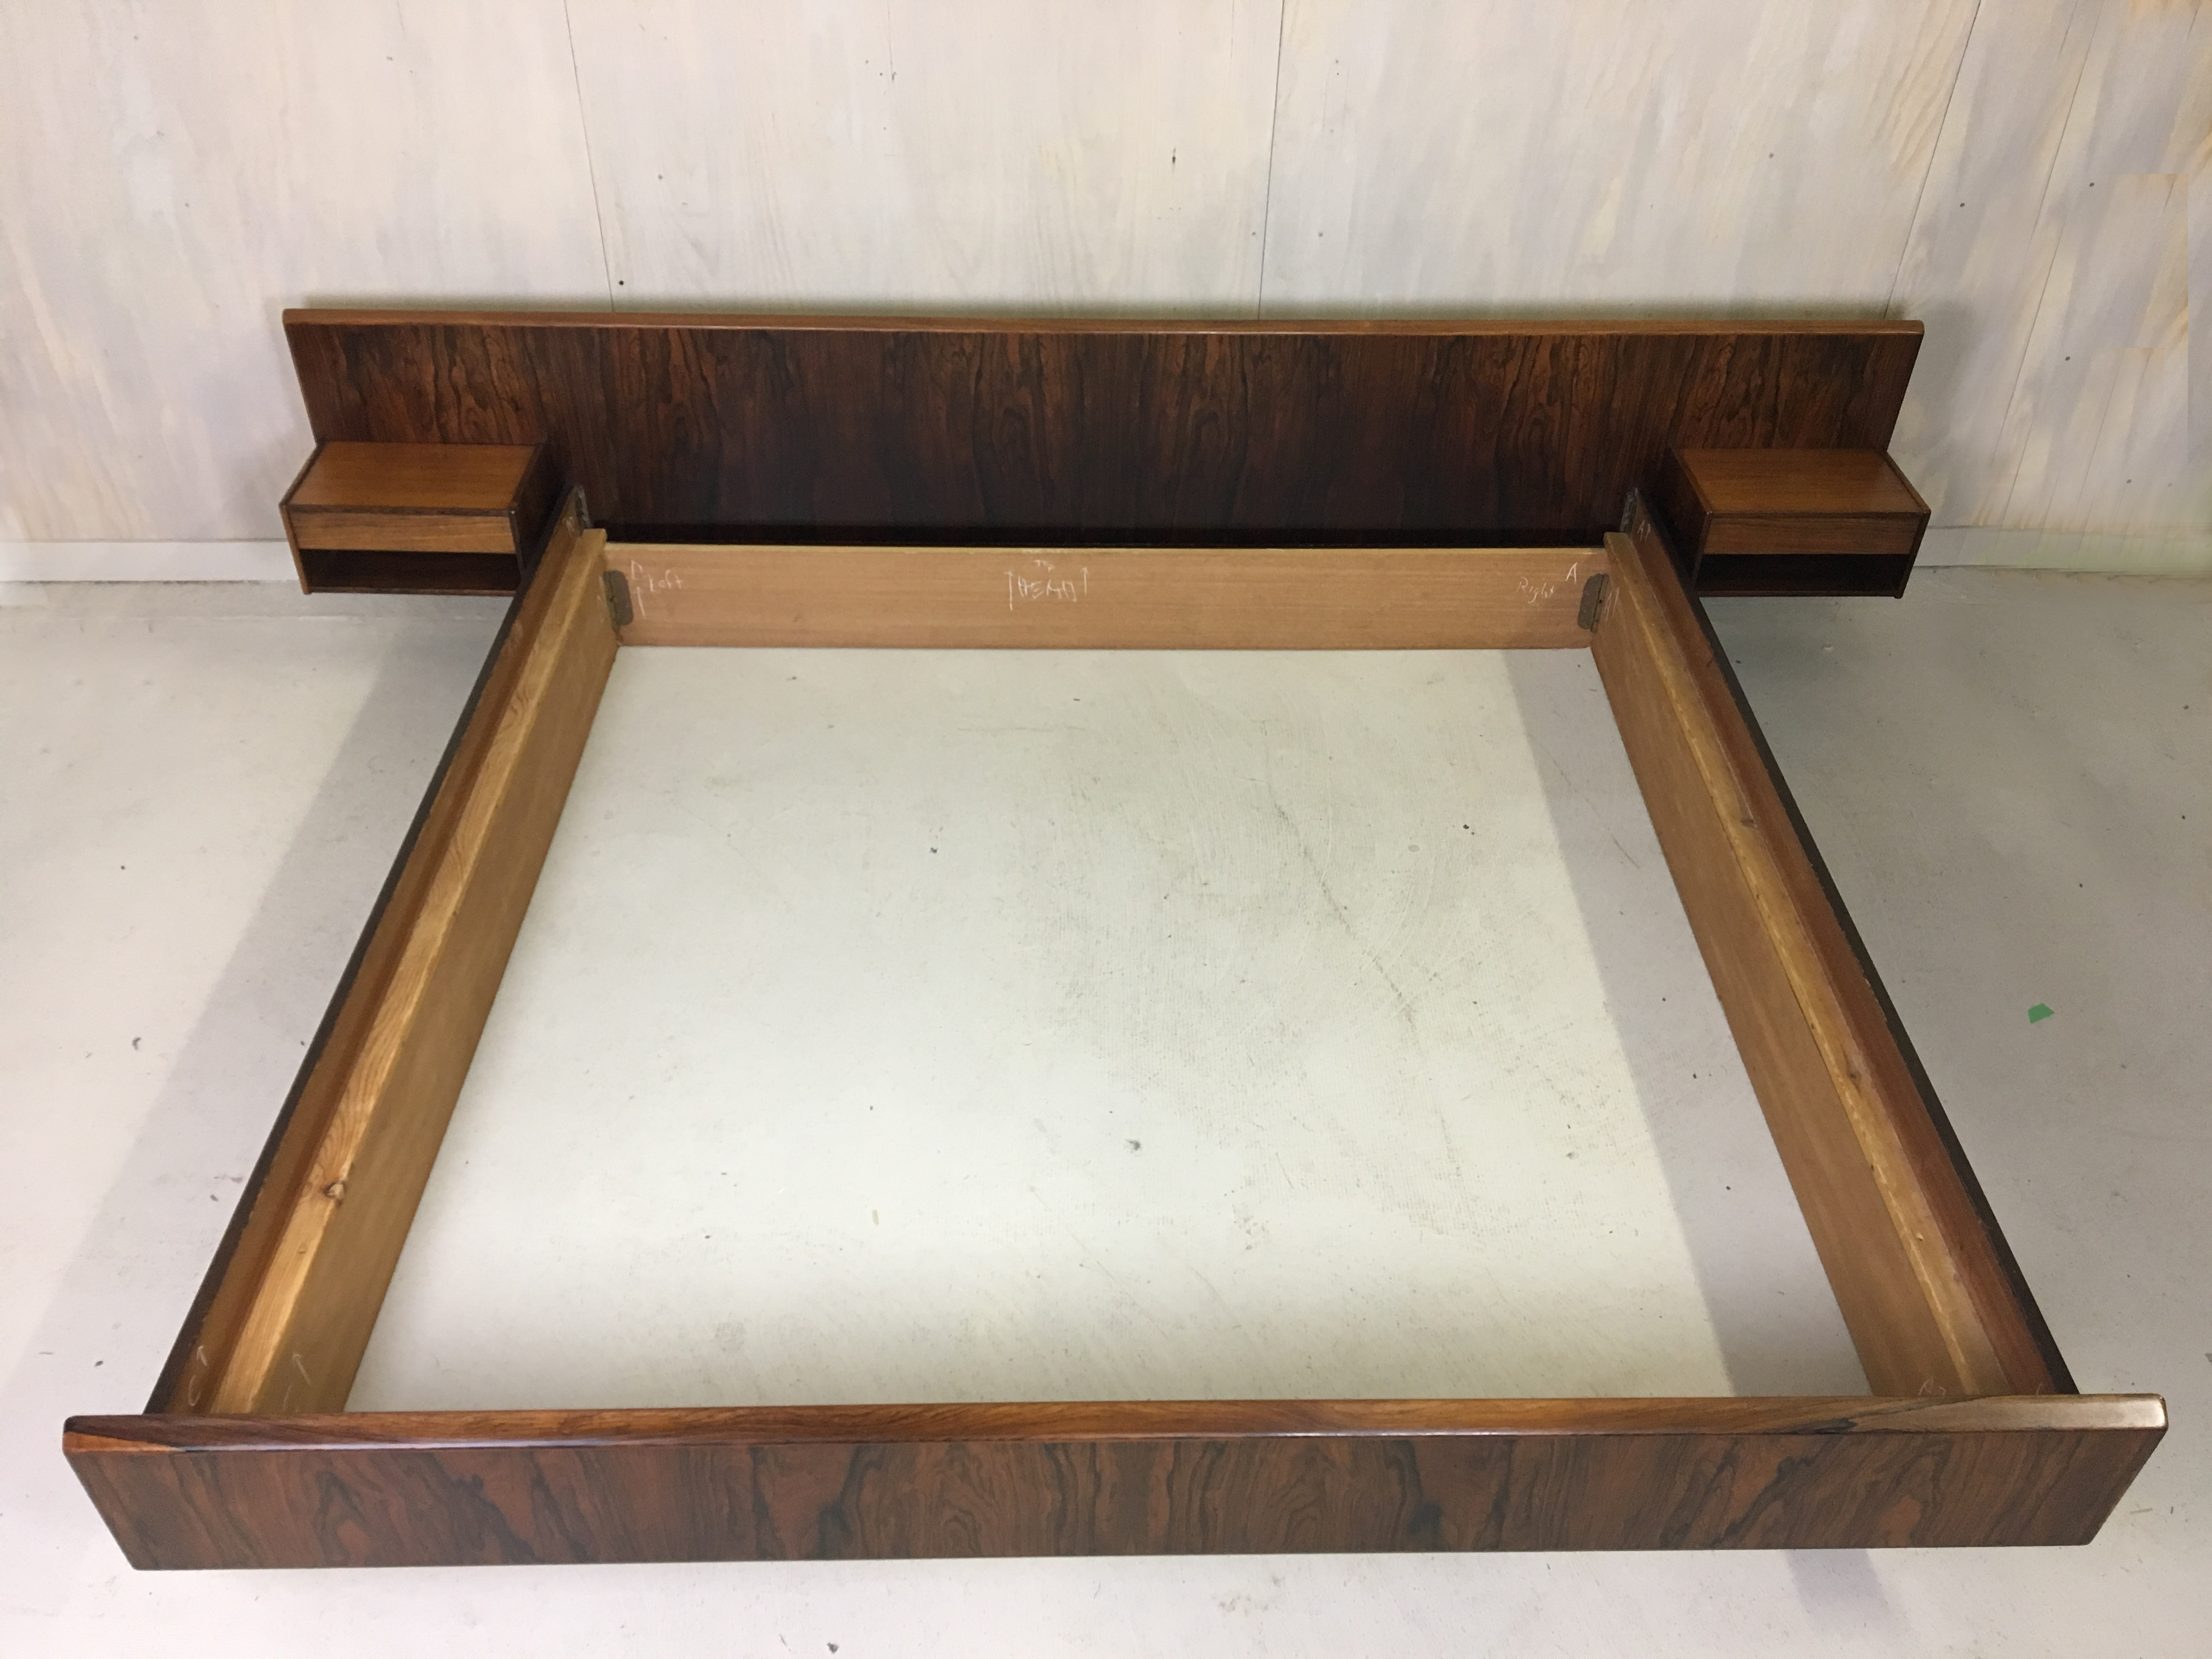 Kingsize Rosewood Platform Bed with Floating Nightstands